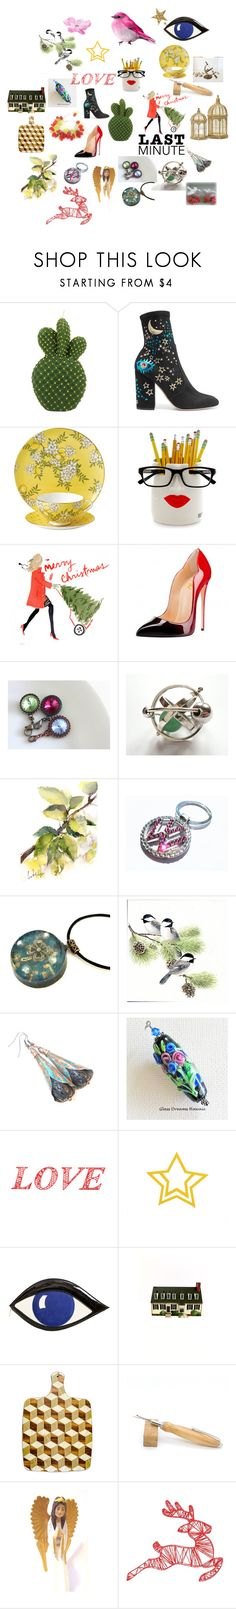 """""""27 December"""" by bizarrejewelry ❤ liked on Polyvore featuring &klevering, Valentino, Wedgwood, WALL and Lulu Guinness"""